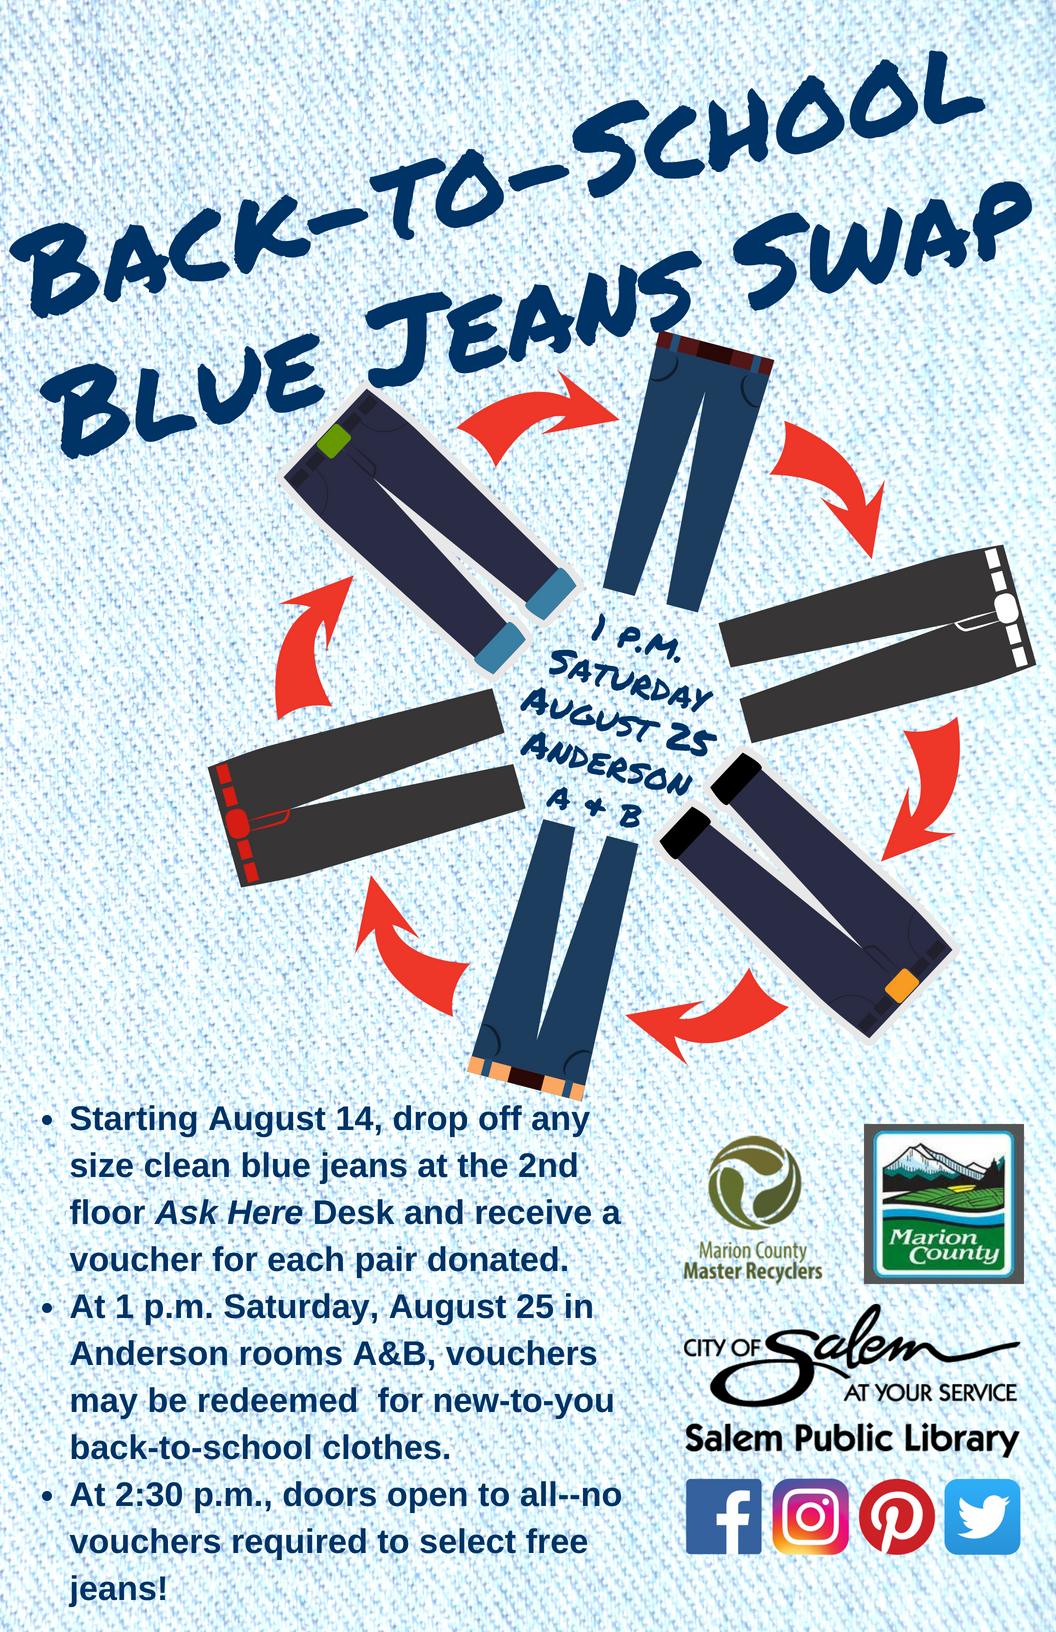 Back to School Blue Jeans Swap poster